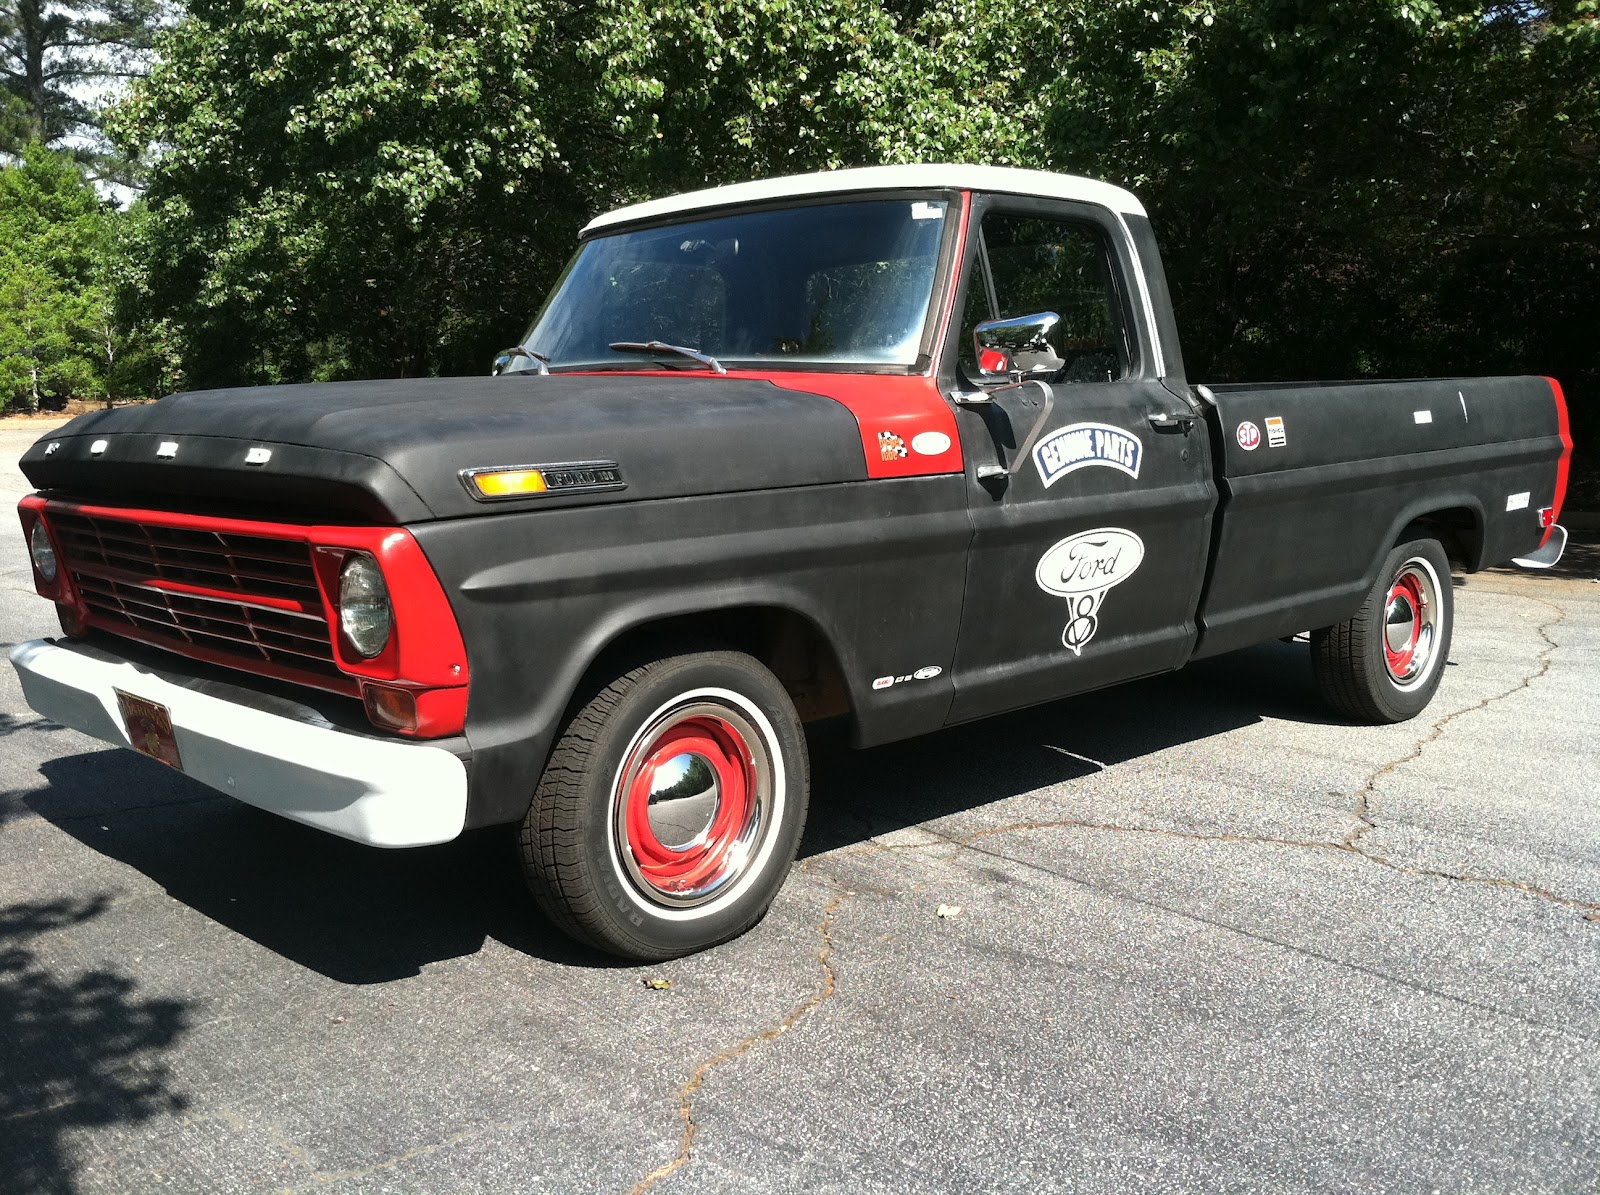 My 1968 Ford F100 Longbed Rat Rod: 1968 Ford F100 Long Bed